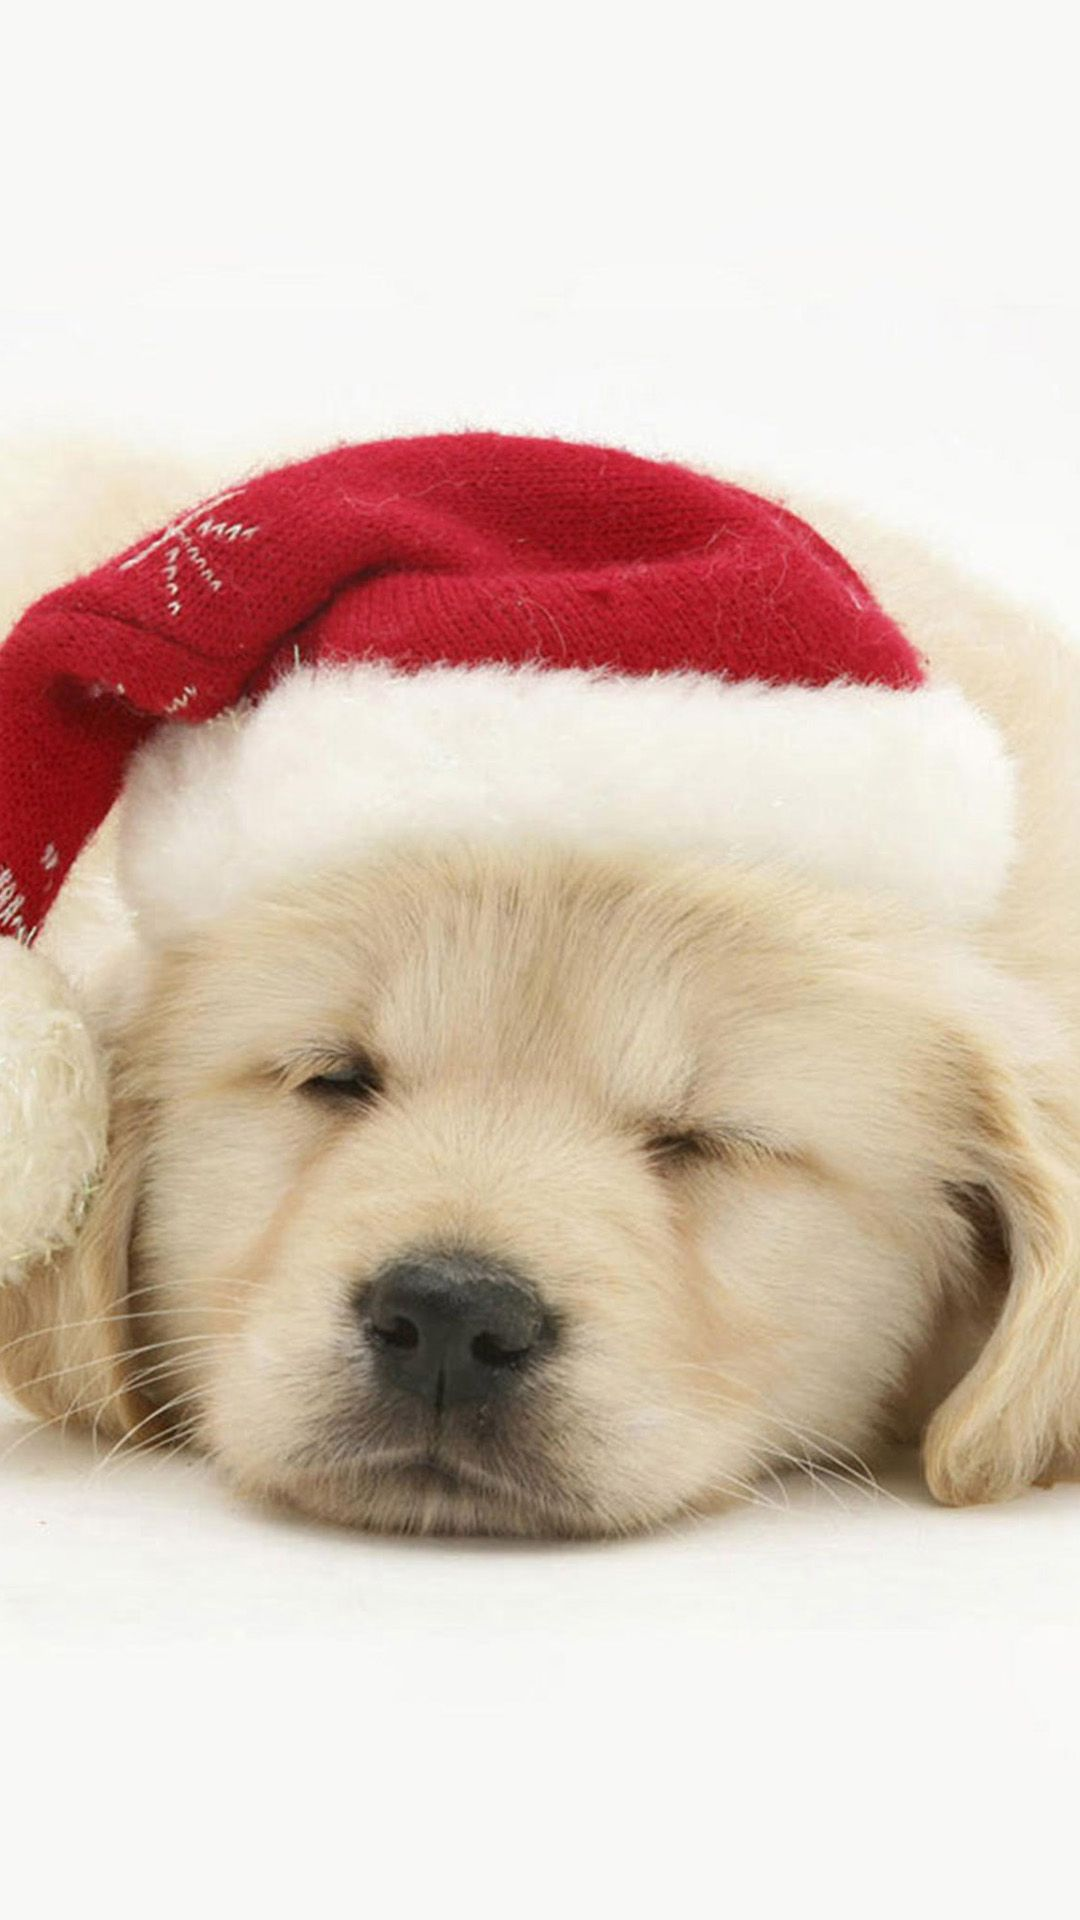 Cute Puppy In Christmas Hat Iphone 8 Wallpaper - Baby Christmas Golden Retrievers , HD Wallpaper & Backgrounds